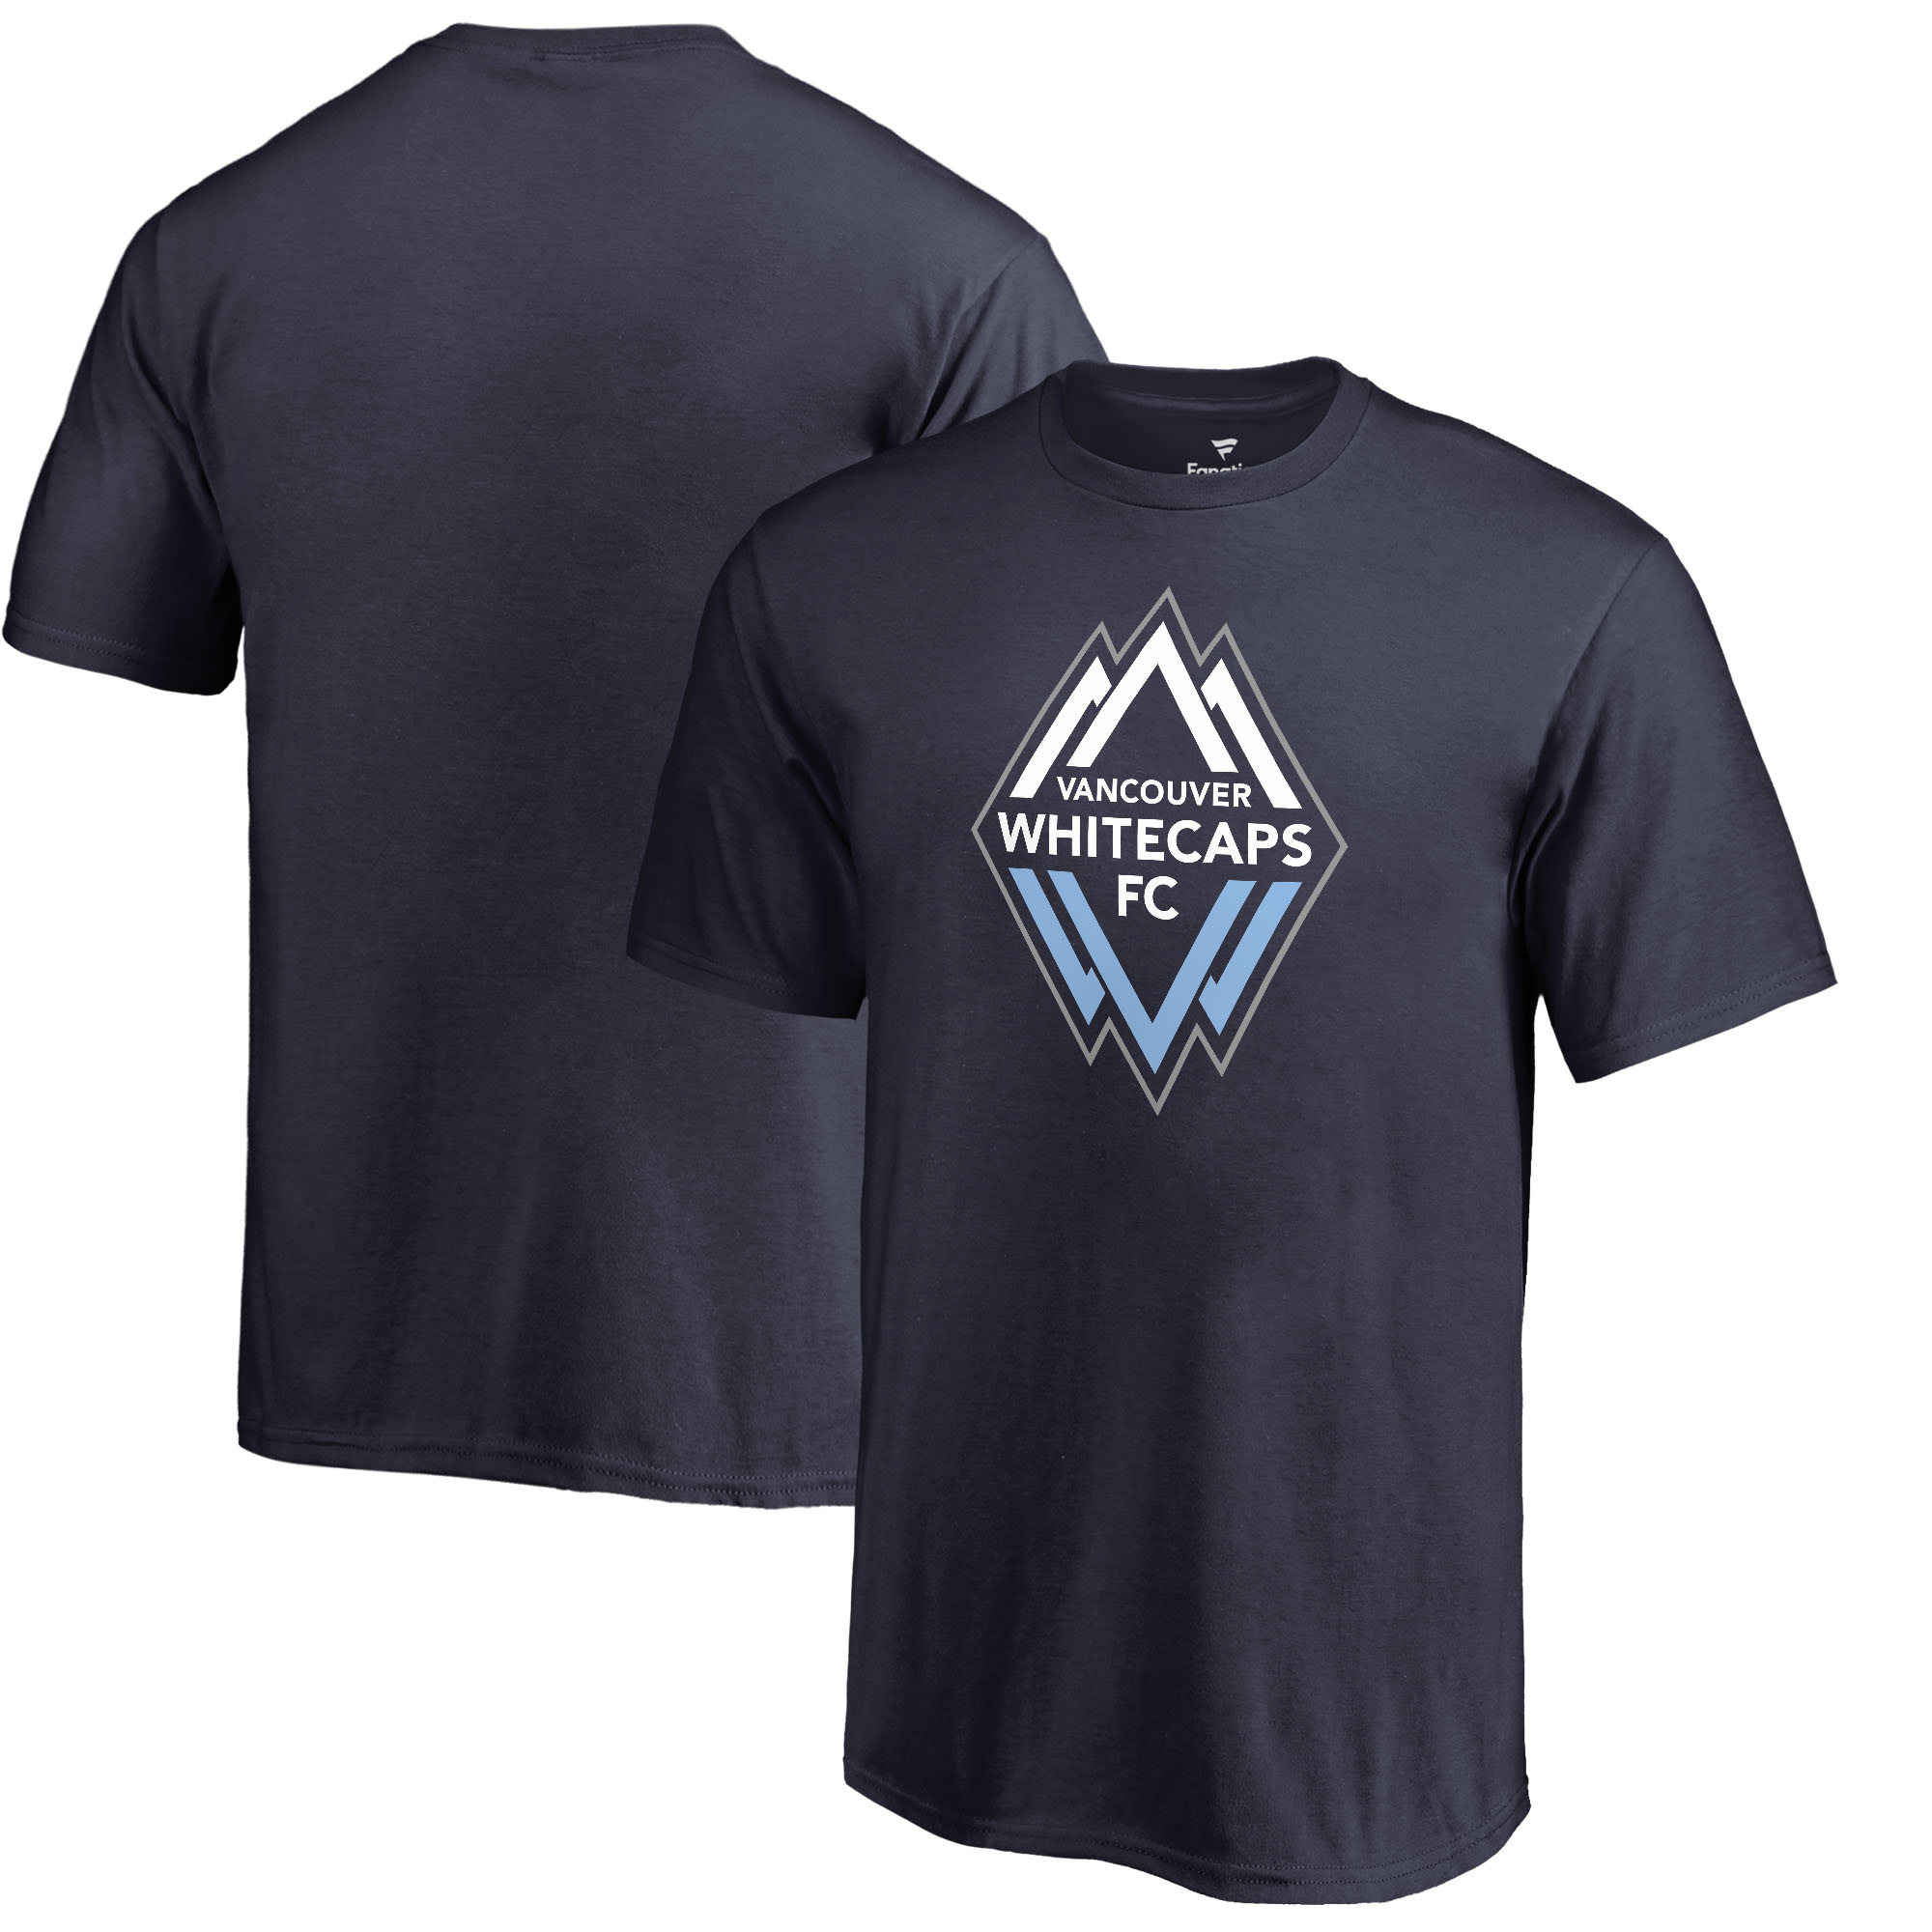 Vancouver Whitecaps FC Fanatics Branded Youth Primary Logo T-Shirt - Navy